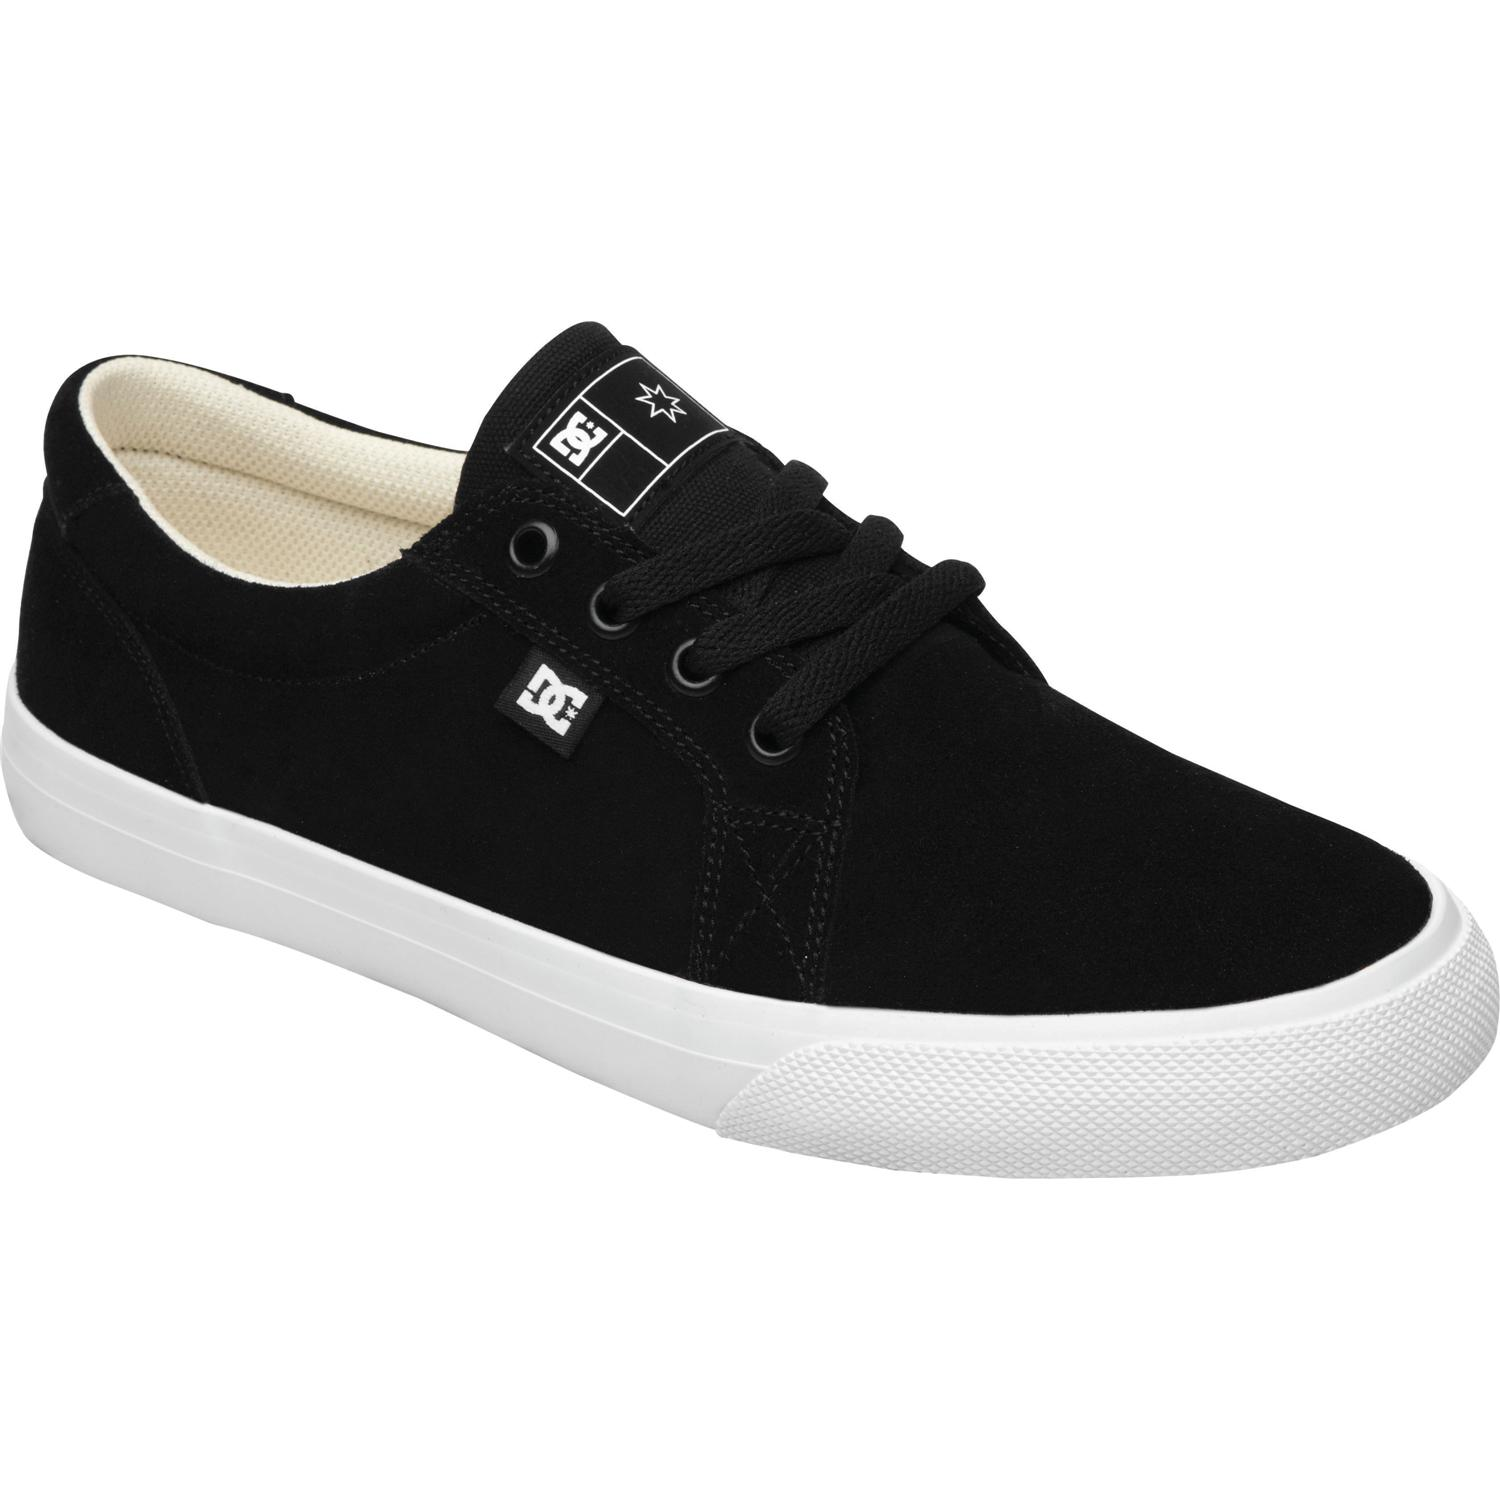 DC Shoes in Camarillo Premium Outlets, California DC Shoes is located in Camarillo Premium Outlets, California, city Camarillo. DC Shoes info: address, gps, map, .